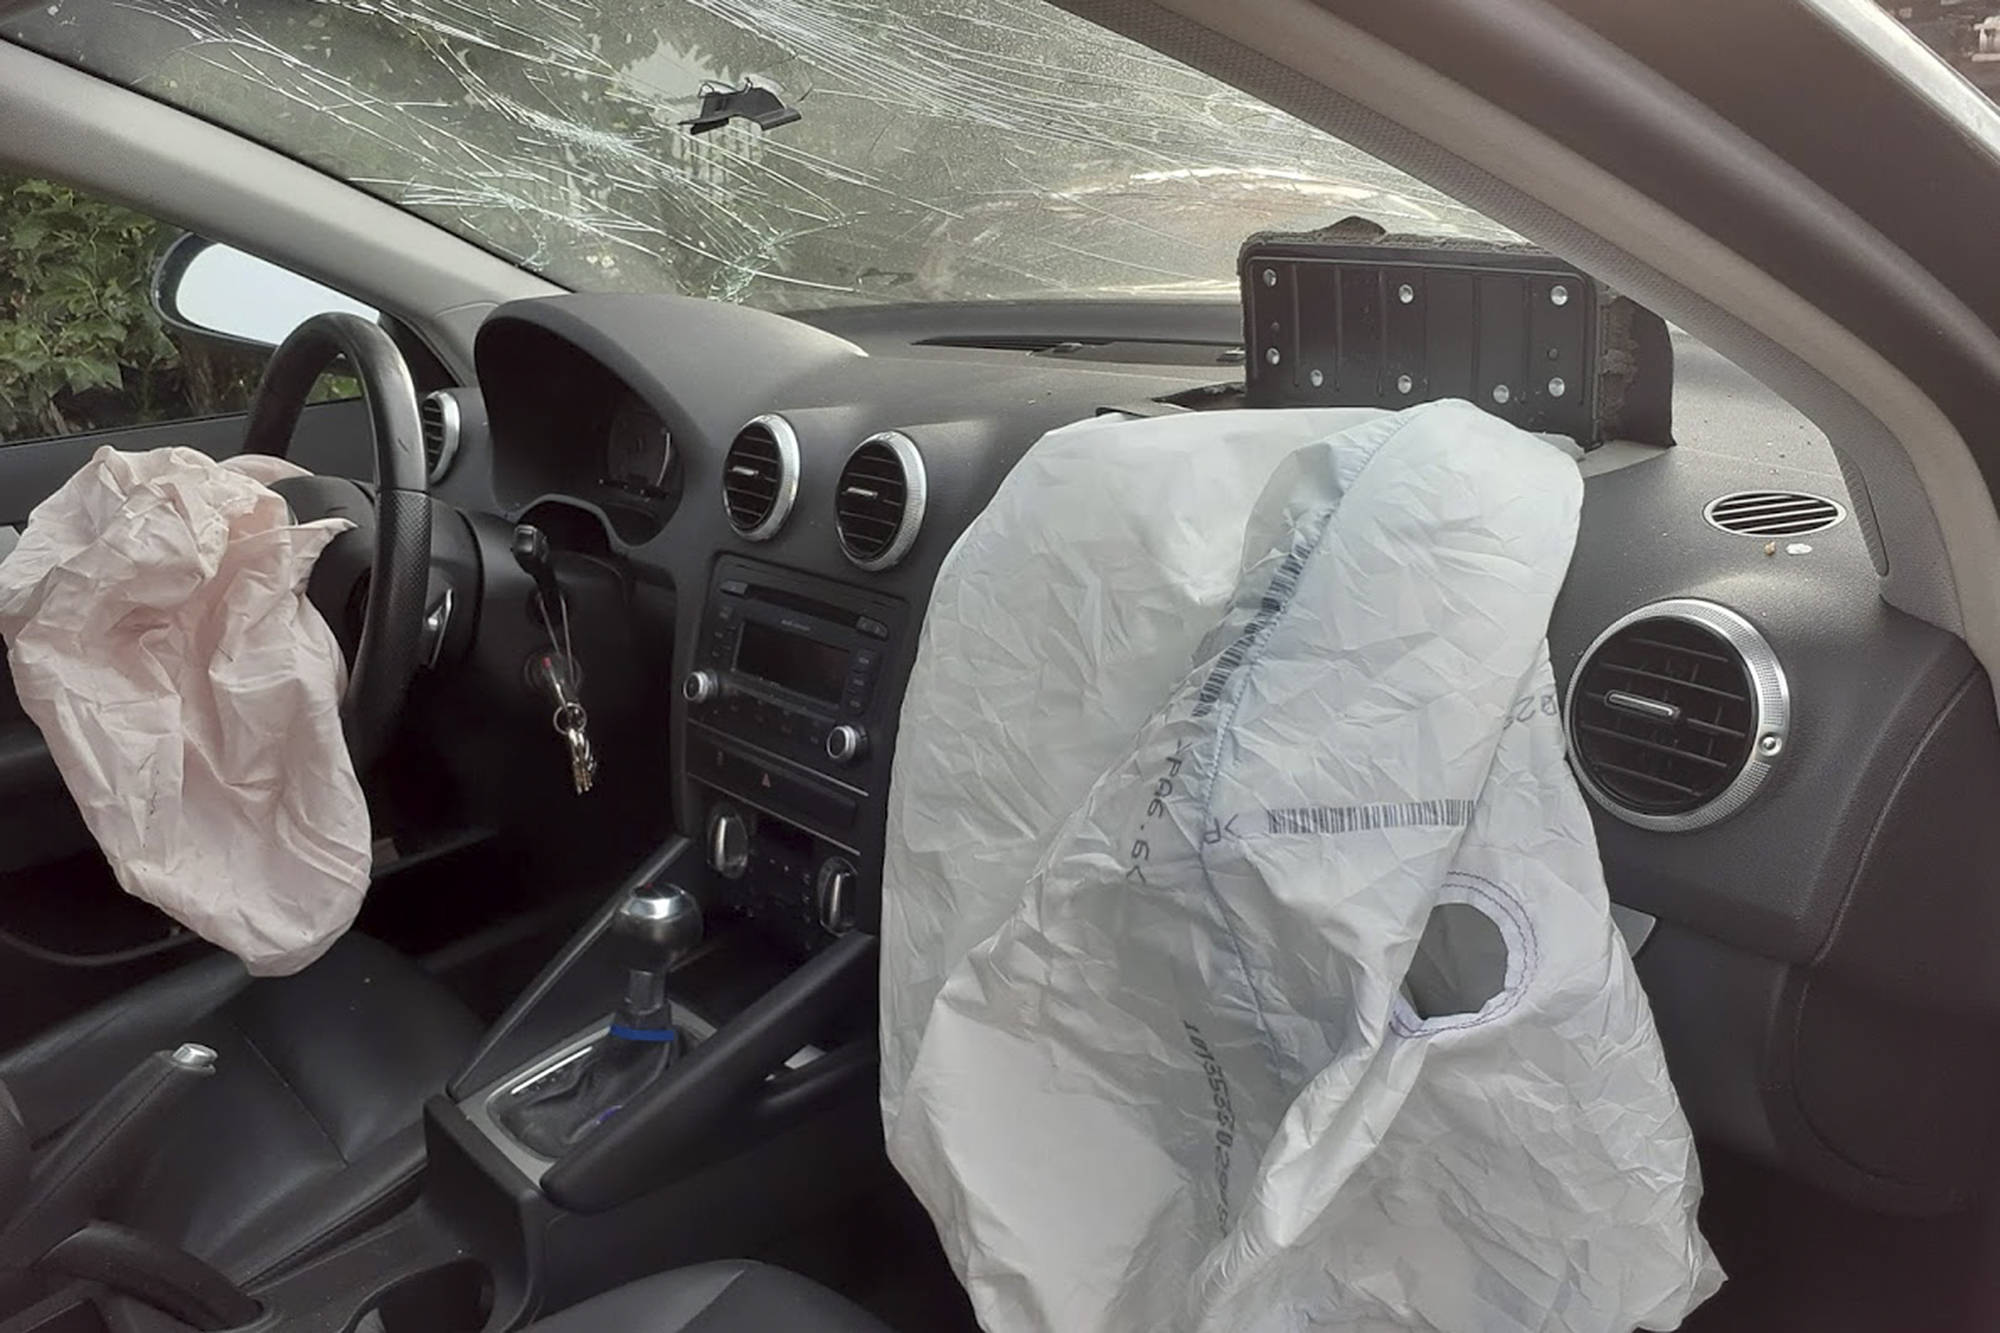 The interior of an Audi belonging to Jerry Petkau of Salmon Arm after an encounter with a black bear in eastern B.C. on Aug. 6. The vehicle was a write-off and the bear was killed but Petkau was not injured. (Photo contributed)